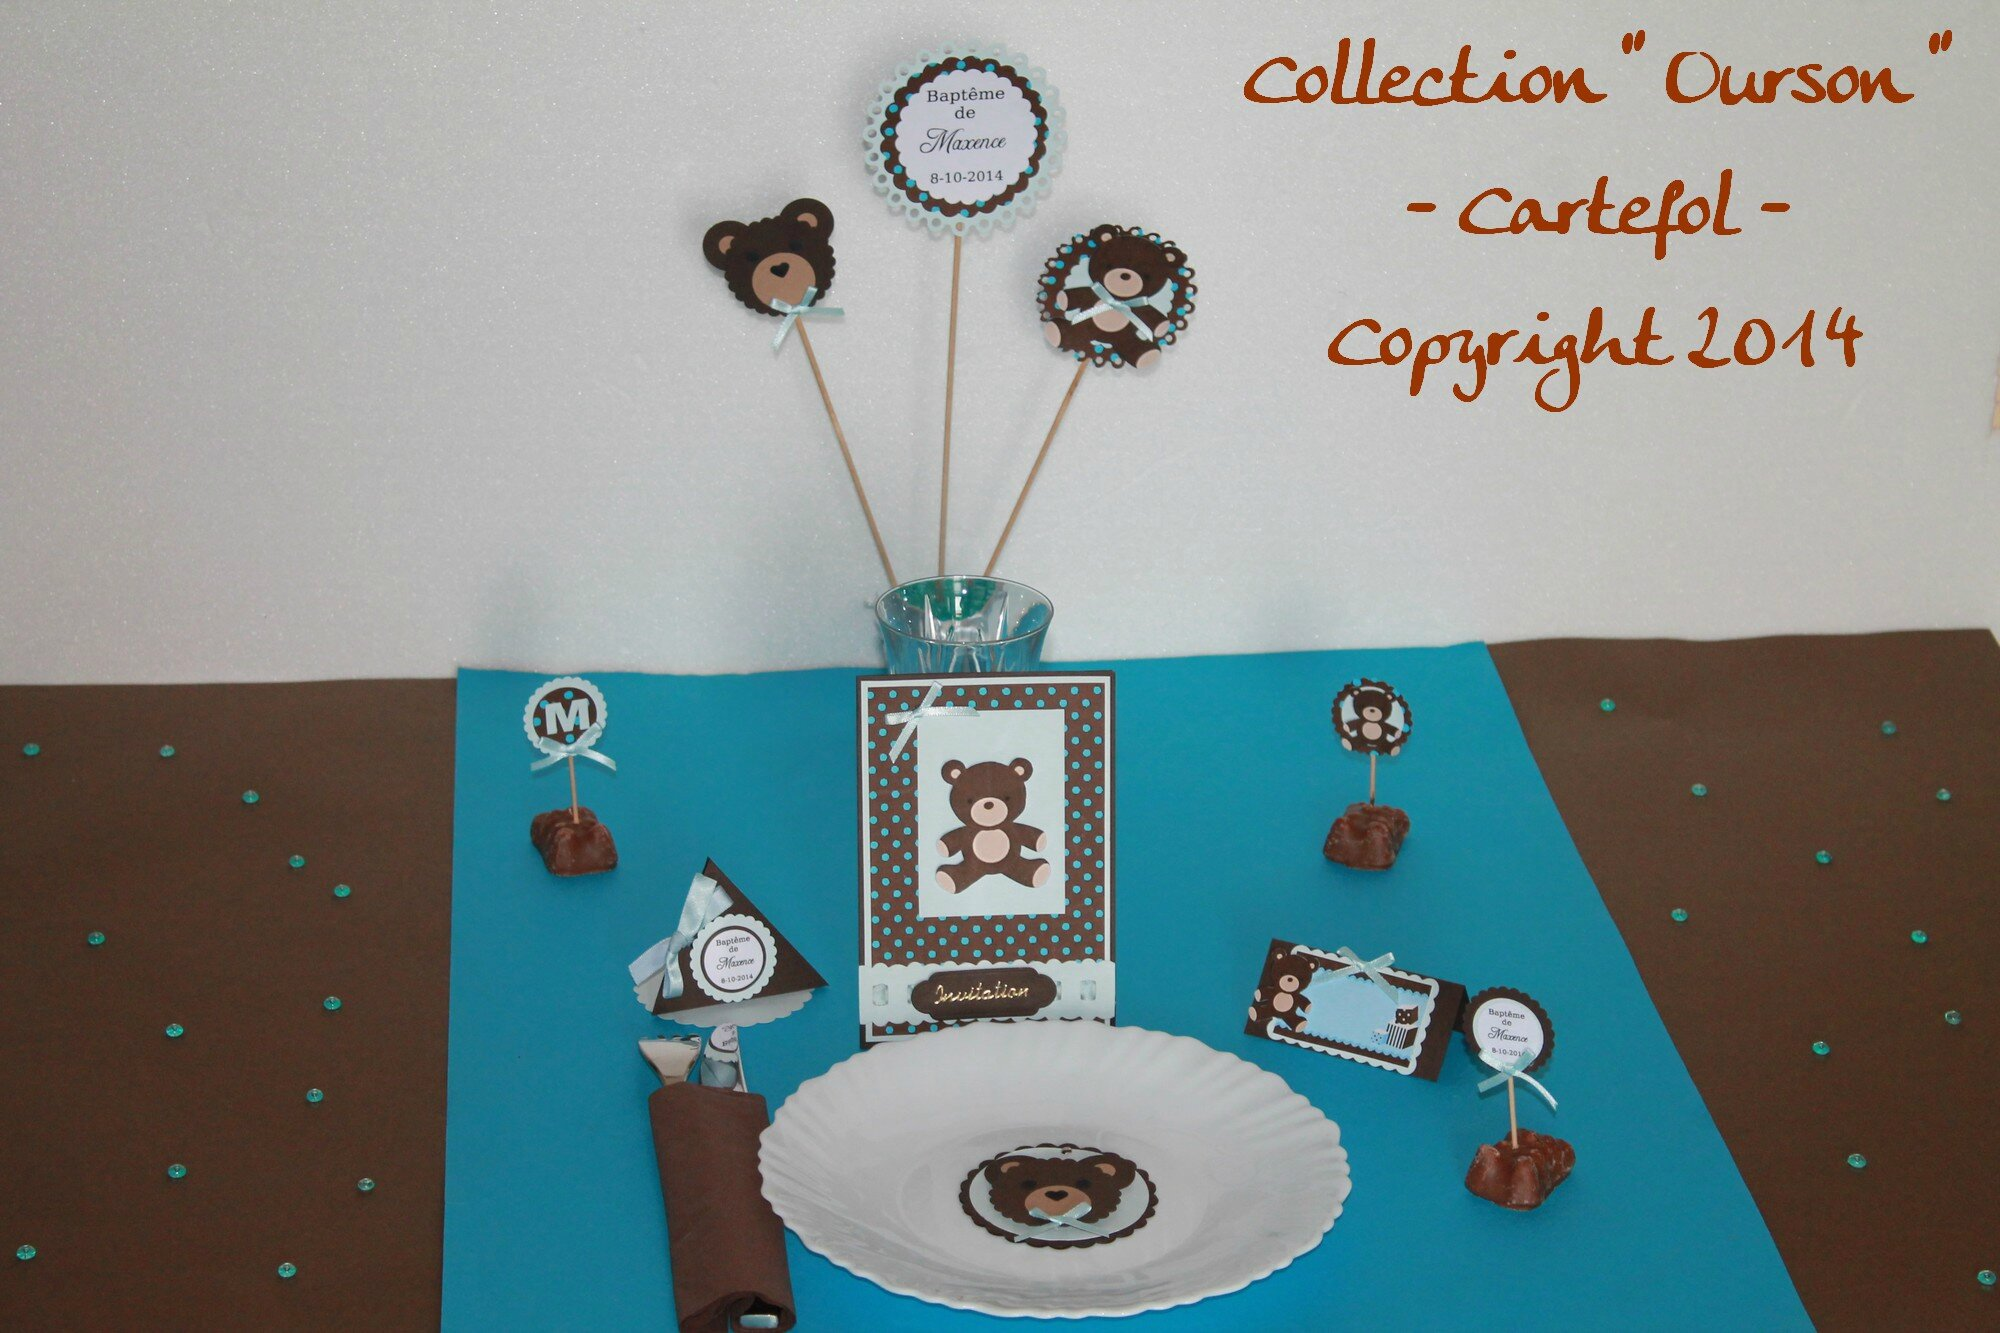 Collection Ourson Cartefol